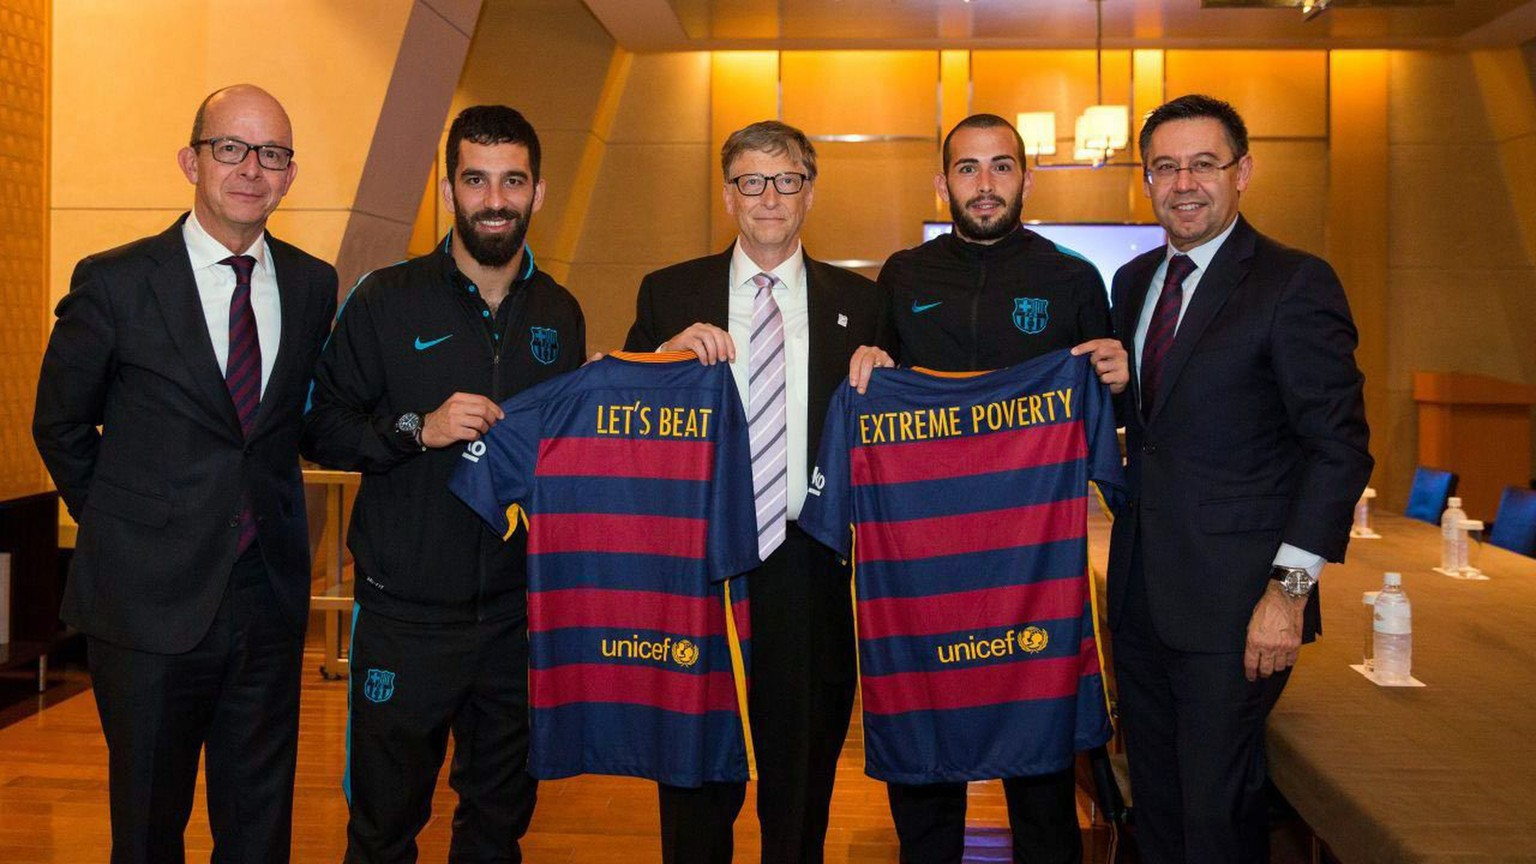 epa05071236 A handout picture provided by FC Barcelona shows FC Barcelona's president, Josep Maria Bartomeu (R), first vice president of the club's Social Area Jordi Cardoner (L), Turkish midfielder Arda Turan (2L), and Spanish Aleix Vidal, posing with Microsoft founder and co-chair of the Bill & Melinda Gates Foundation, Bill Gates (C), during a meeting in Tokyo, Japan, 16 December 2015. The Spanish team board members met with Gates in order to analyze the joint projects of Bill & Melinda Gates Foundation and FC Barcelona Foundation.  EPA/FC BARCLEONA  HANDOUT EDITORIAL USE ONLY/NO SALES